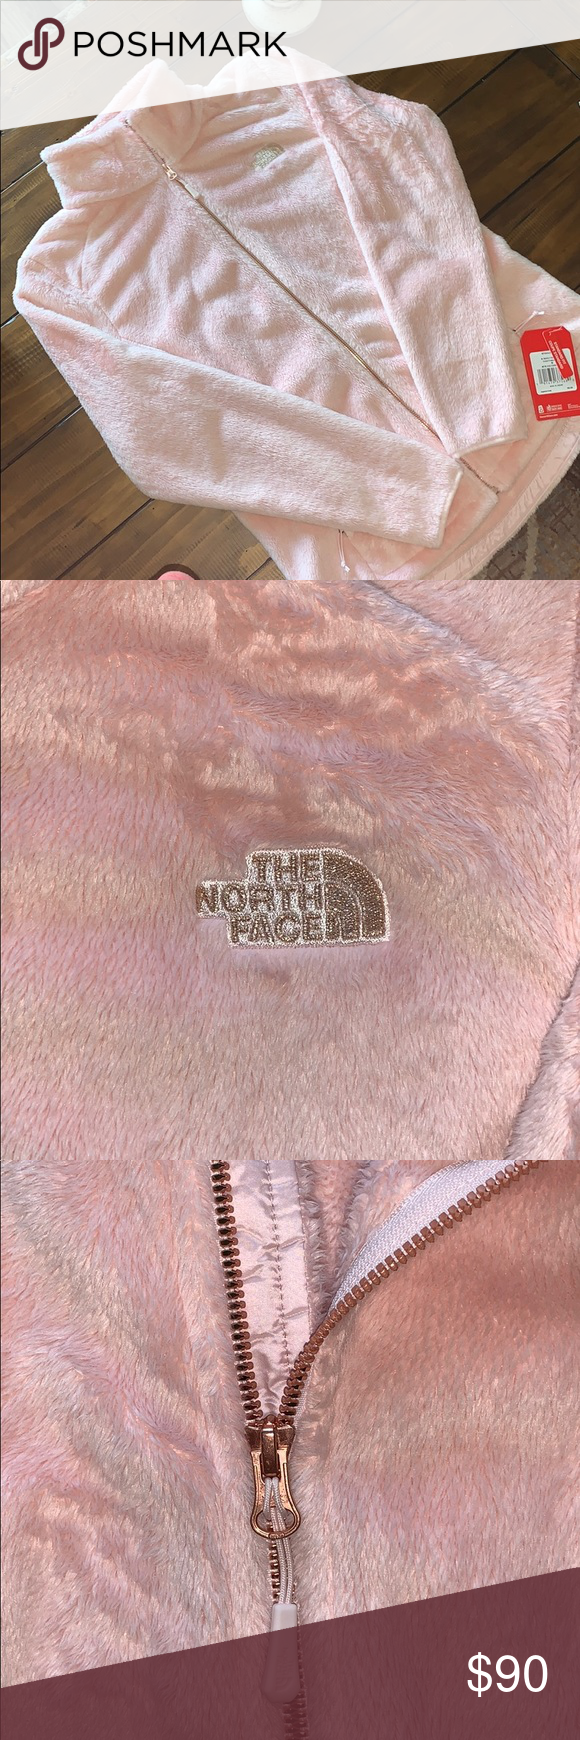 Reserved Brand New North Face Jacket North Face Jacket Jacket Brands Clothes Design [ 1740 x 580 Pixel ]